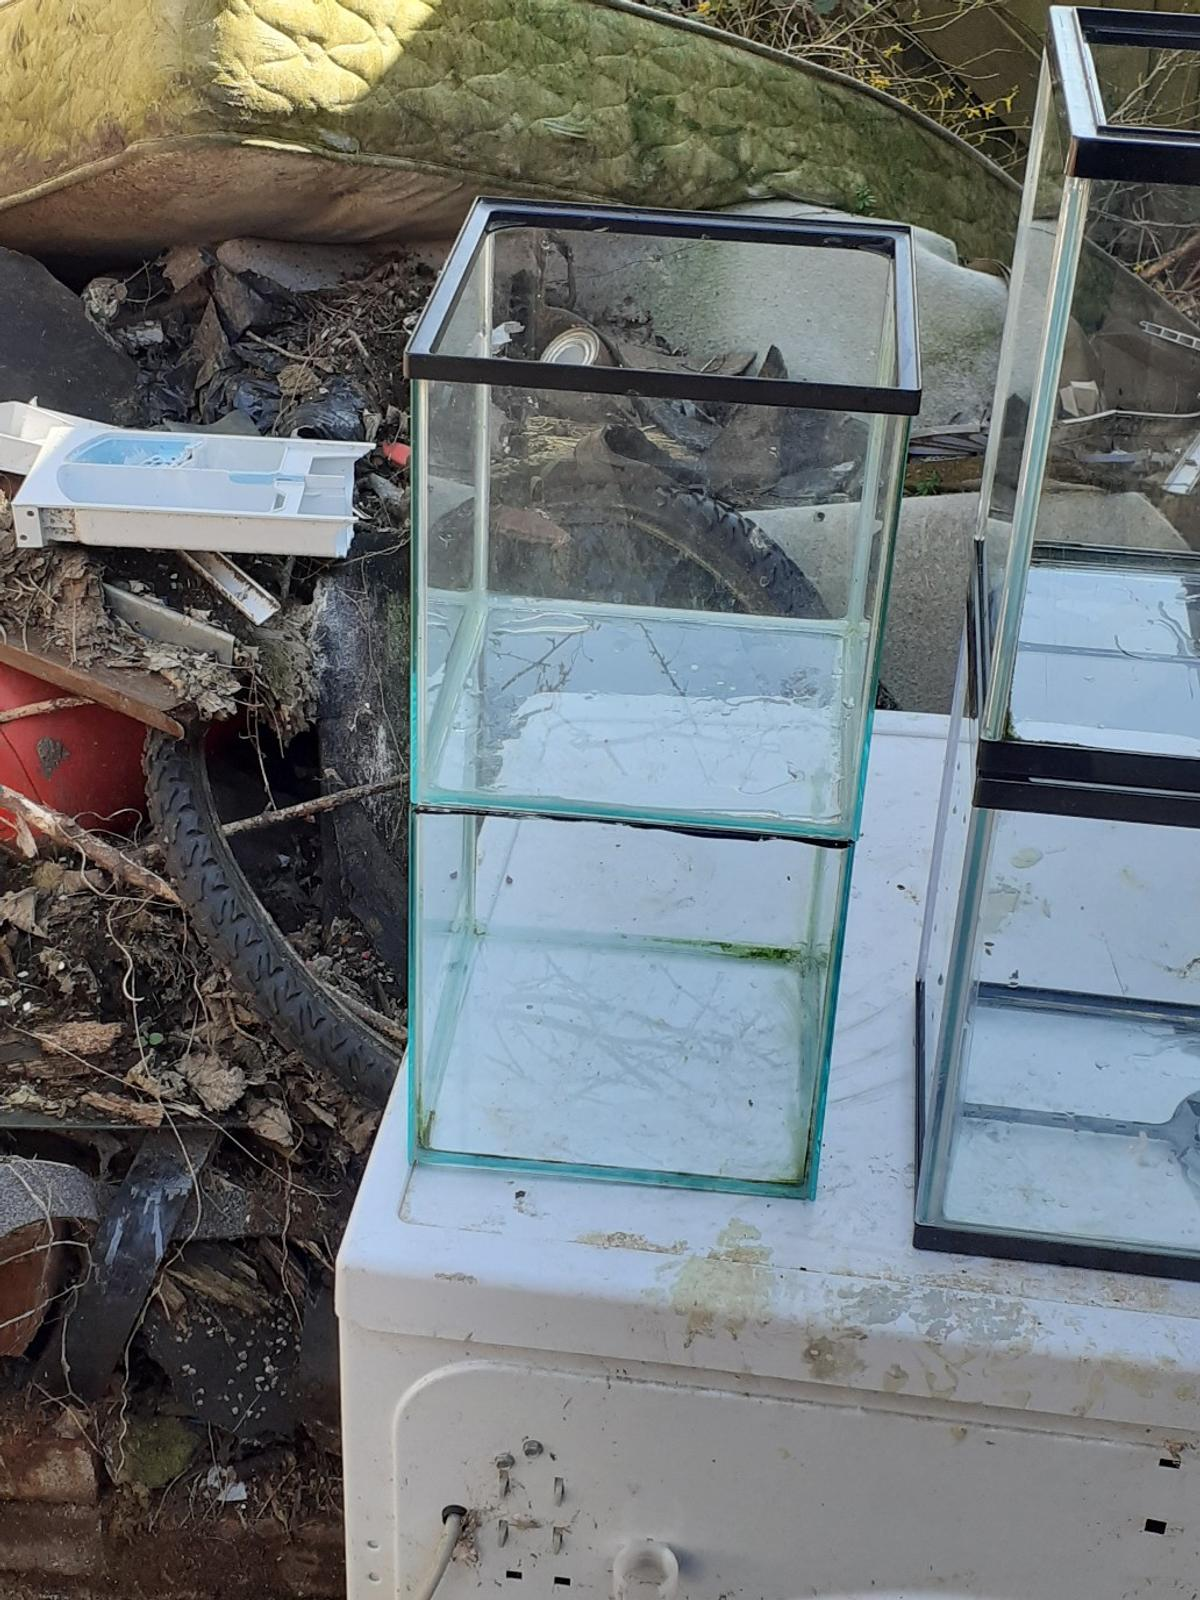 2 Medium fish tanks and 2 Small fish tanks for sale. 2 beta fish size tanks. 2 Starter fish tanks. No leaks and no cracks. No lids included. £20 for all. £5 a tank.